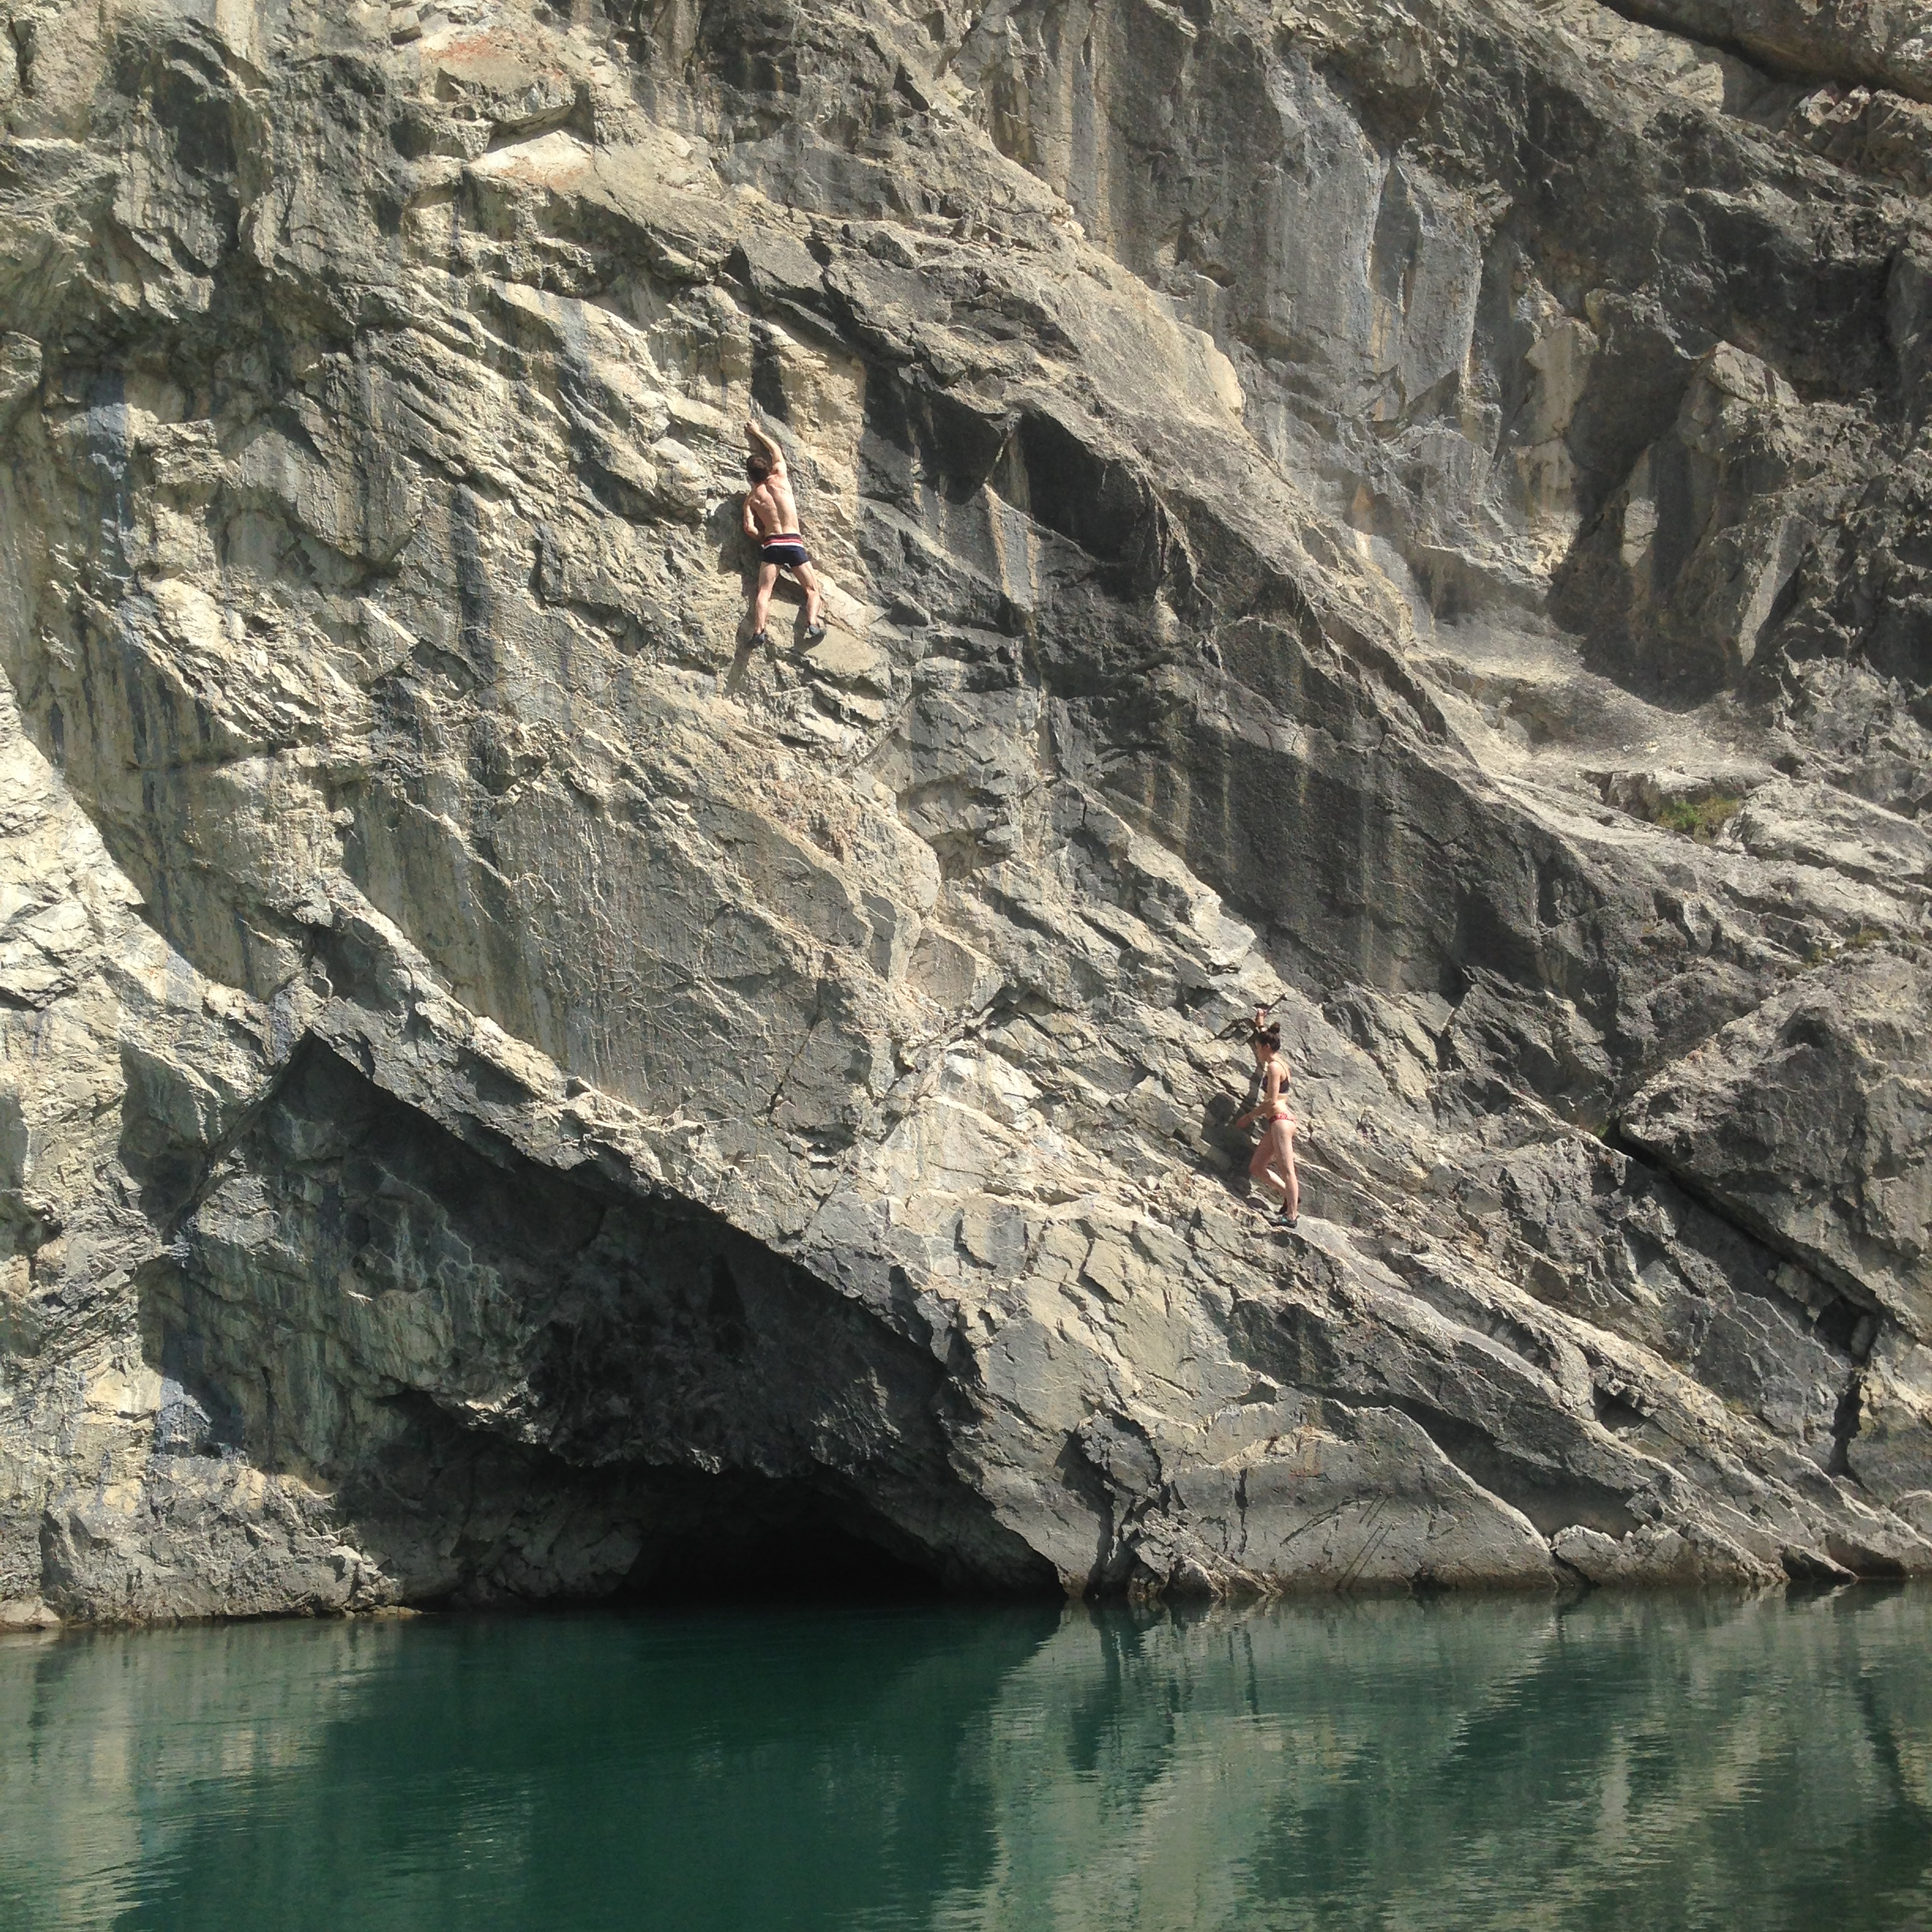 then canmore got really hot, so we (well...not me, i watched) did some deep water soloing.